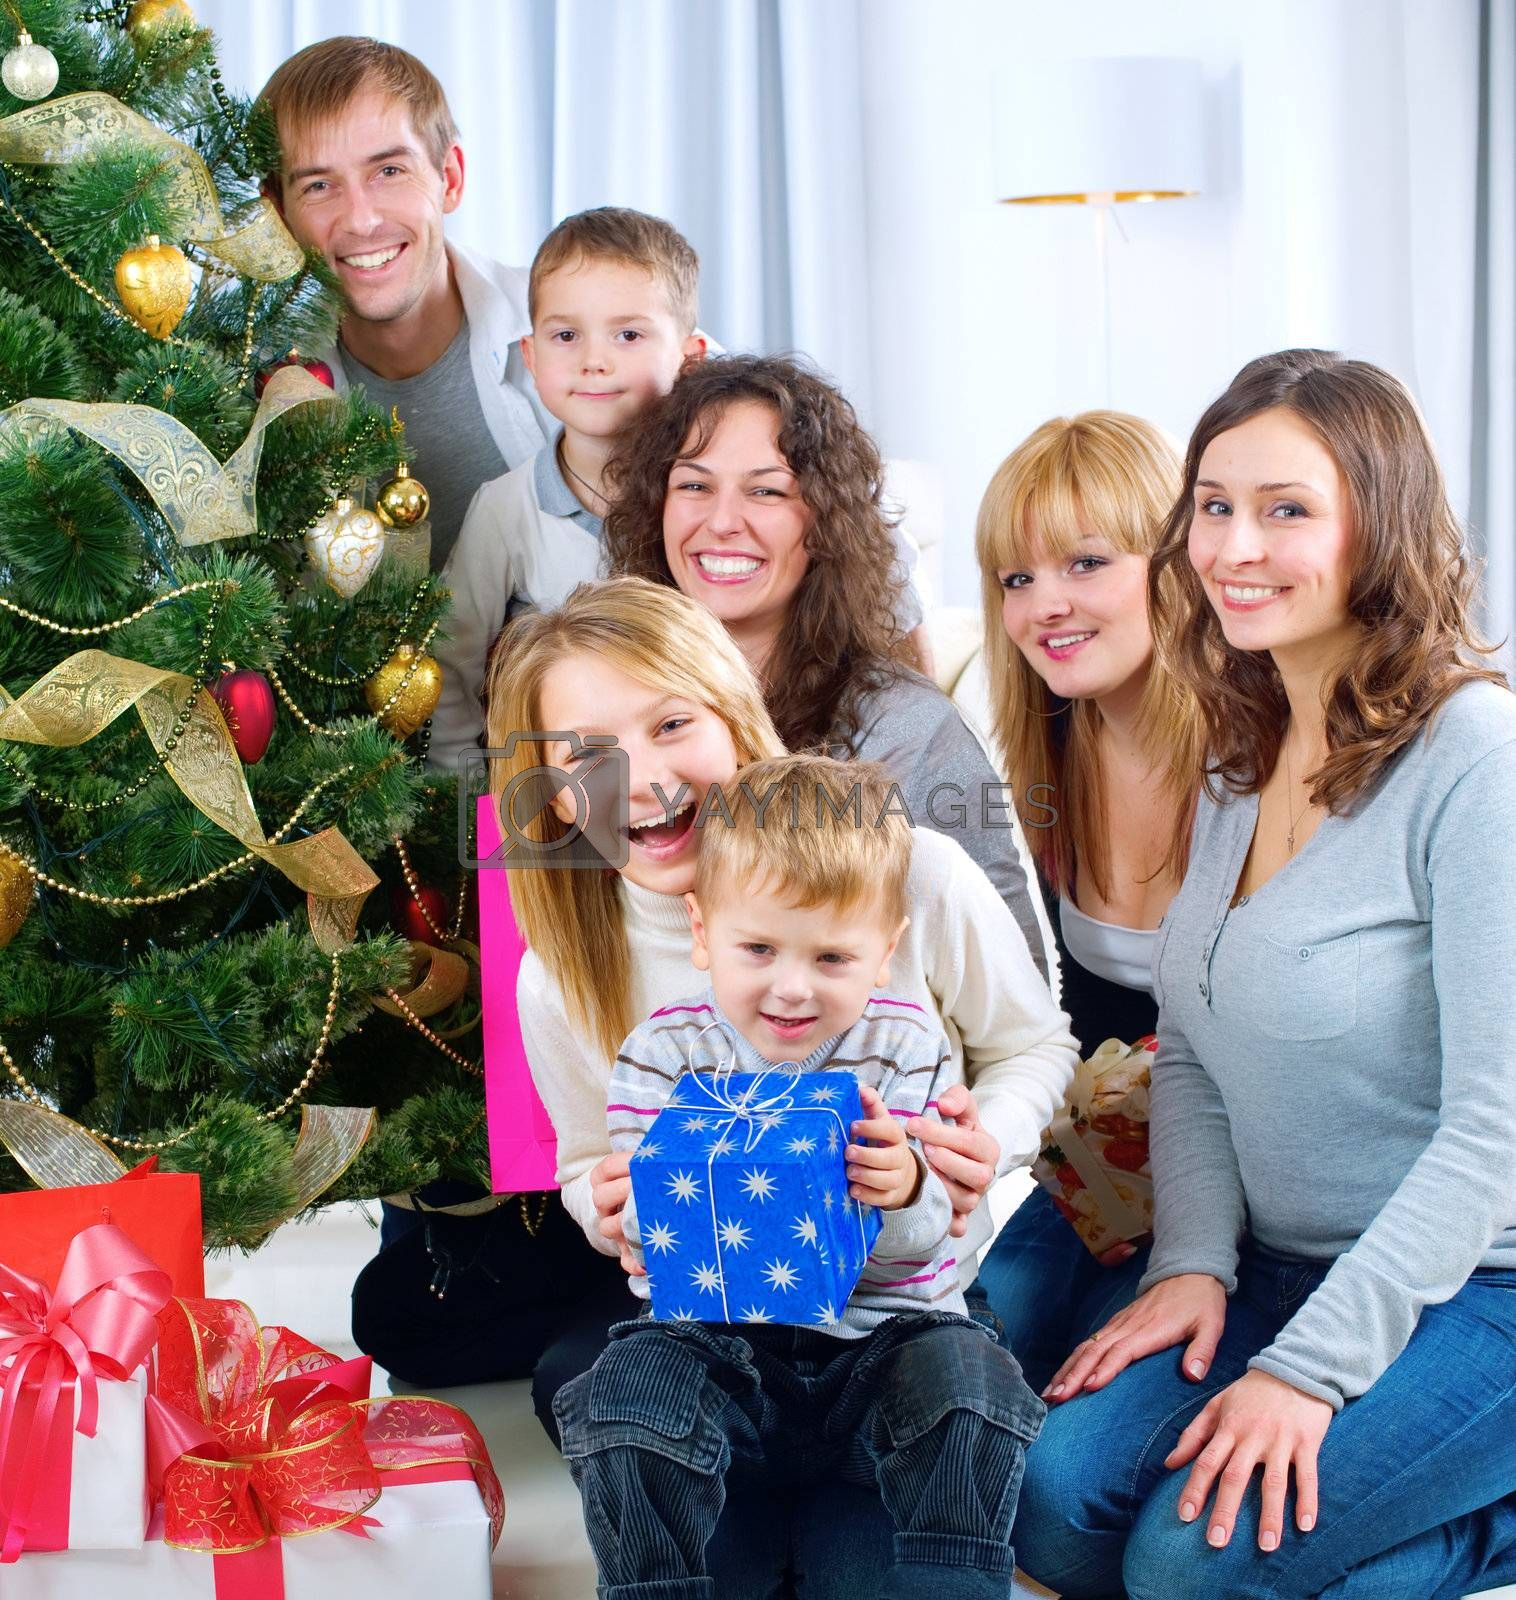 Happy Big family holding Christmas presents at home.Christmas tr by Subbotina Anna